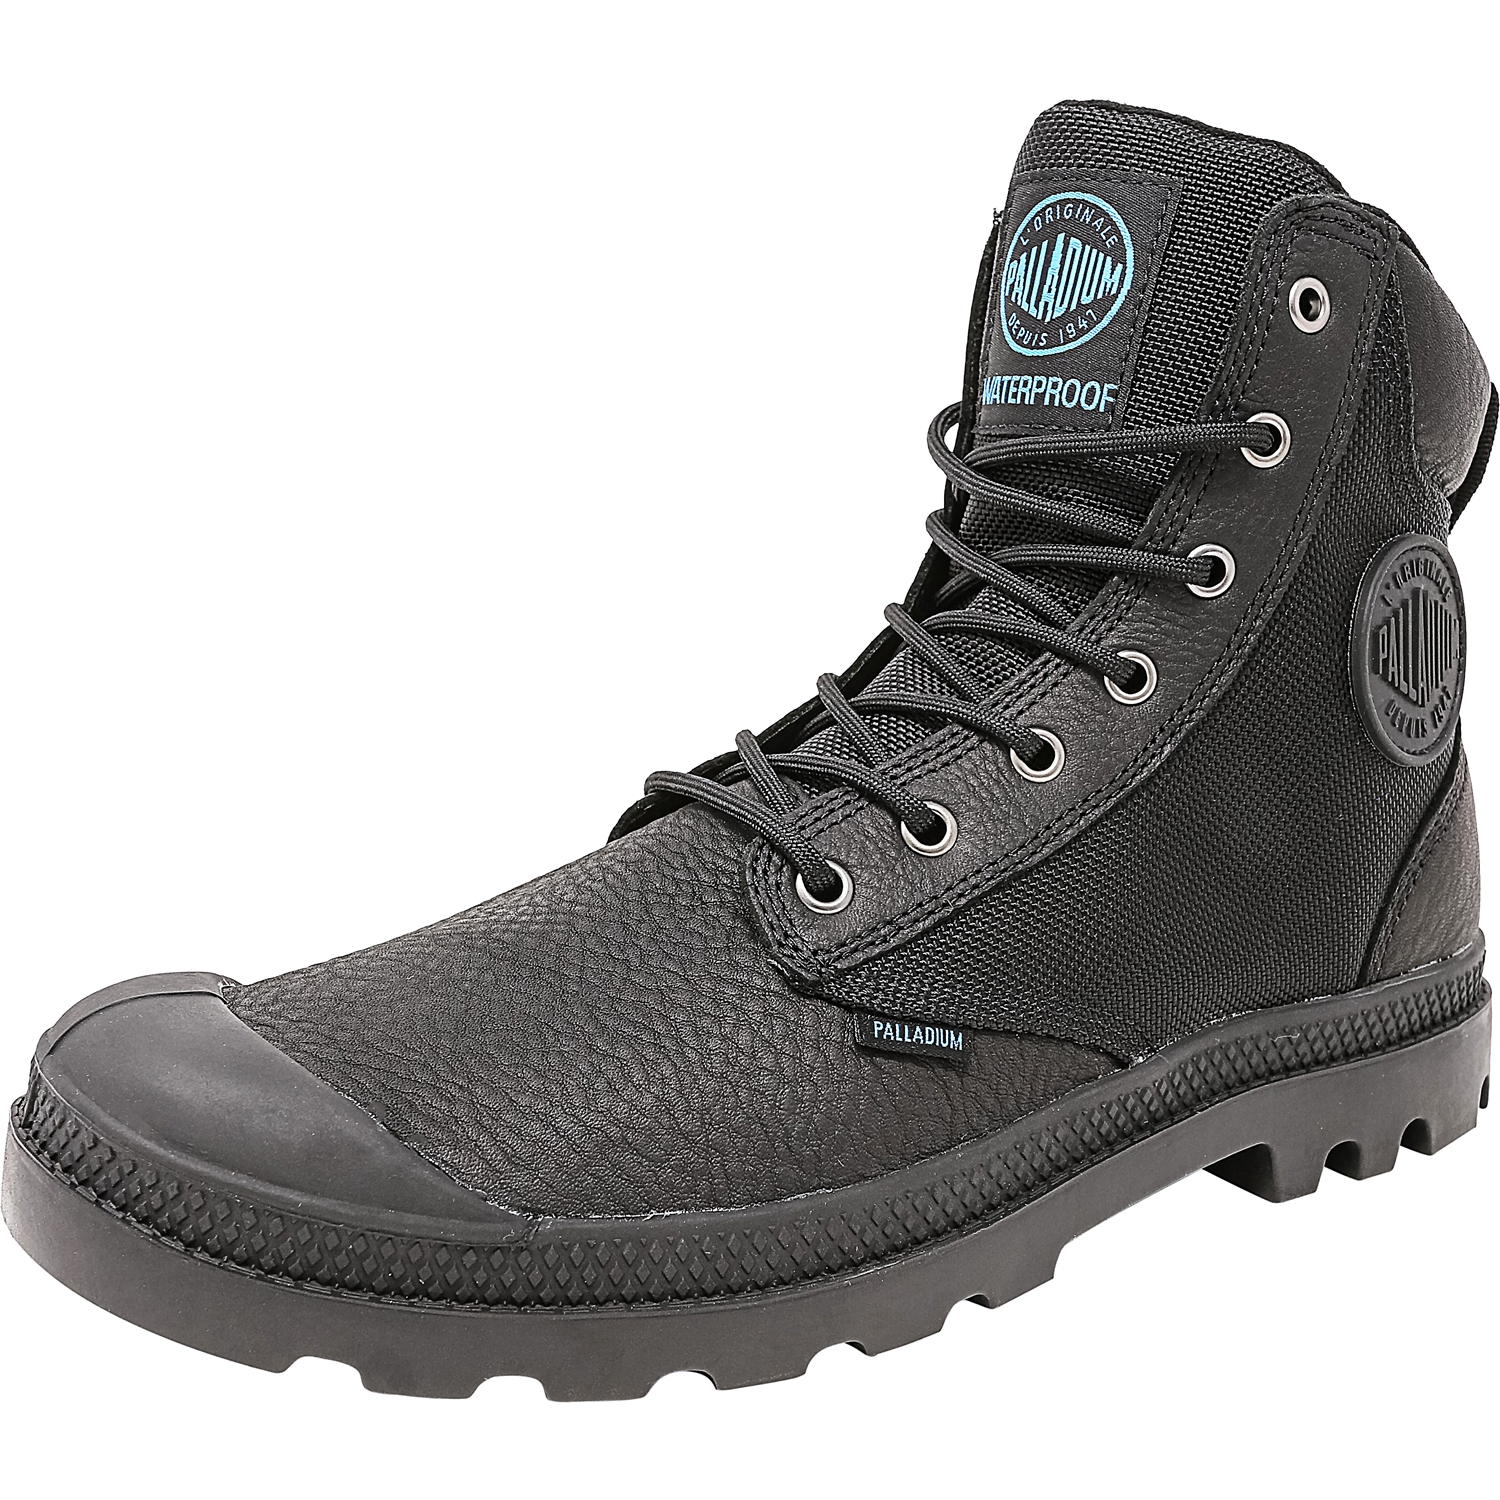 Palladium Men's Pampa Sport Cuff Wpn Black High-Top Canvas Boot - 10M